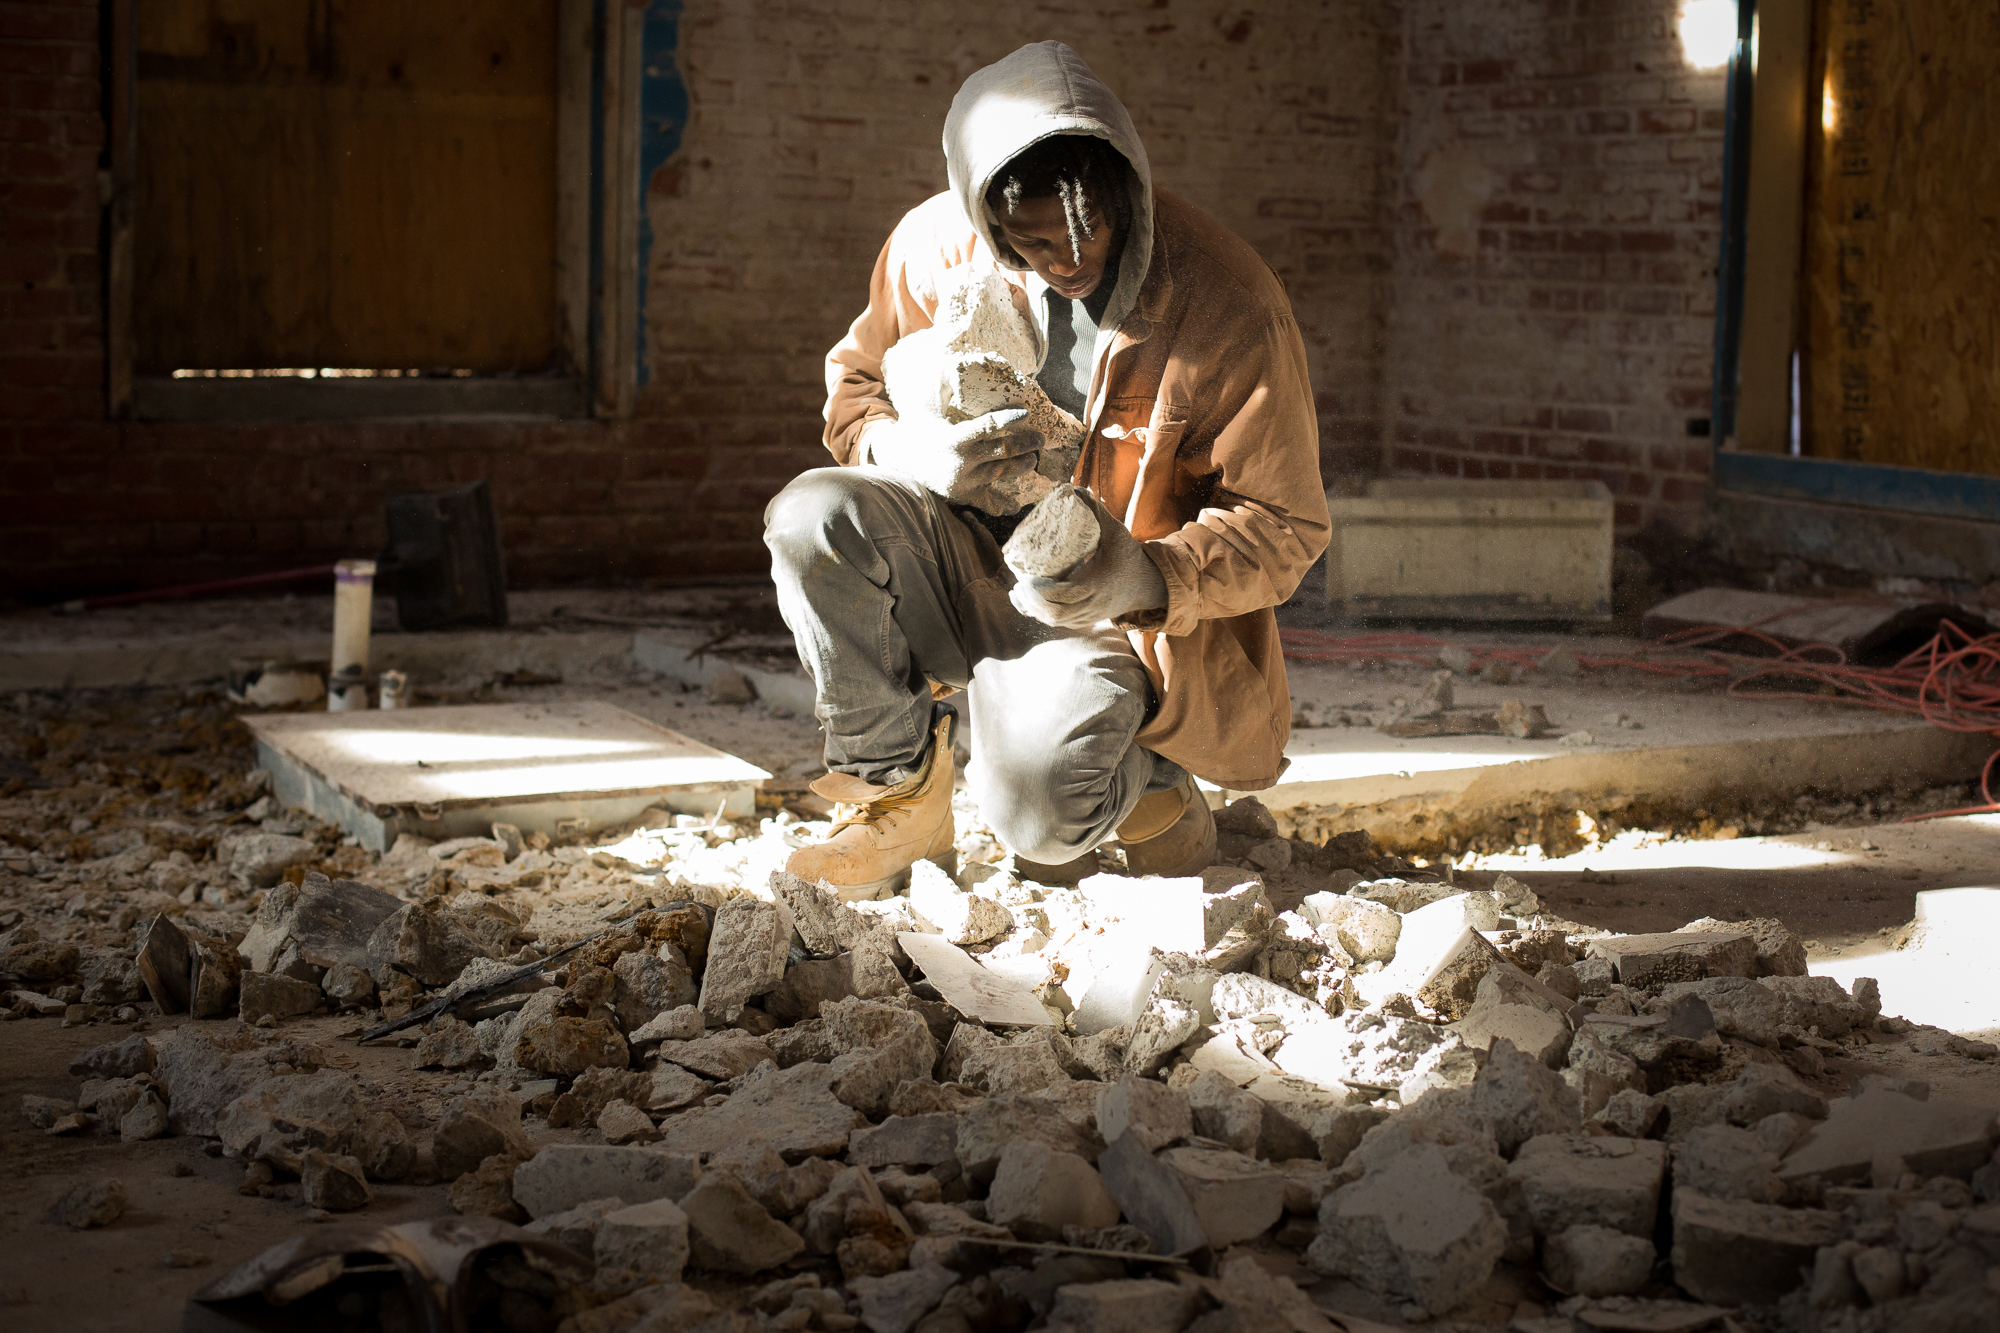 In 2015, Rashard helps demolish and renovate an old restaurant into a new coffee shop in Durham. He began to piece his life back together as he worked on a construction crew with New Beginnings, a faith-based nonprofit that helps the recently incarcerated find work and stability. Most people with felony records are limited to construction and manual labor.